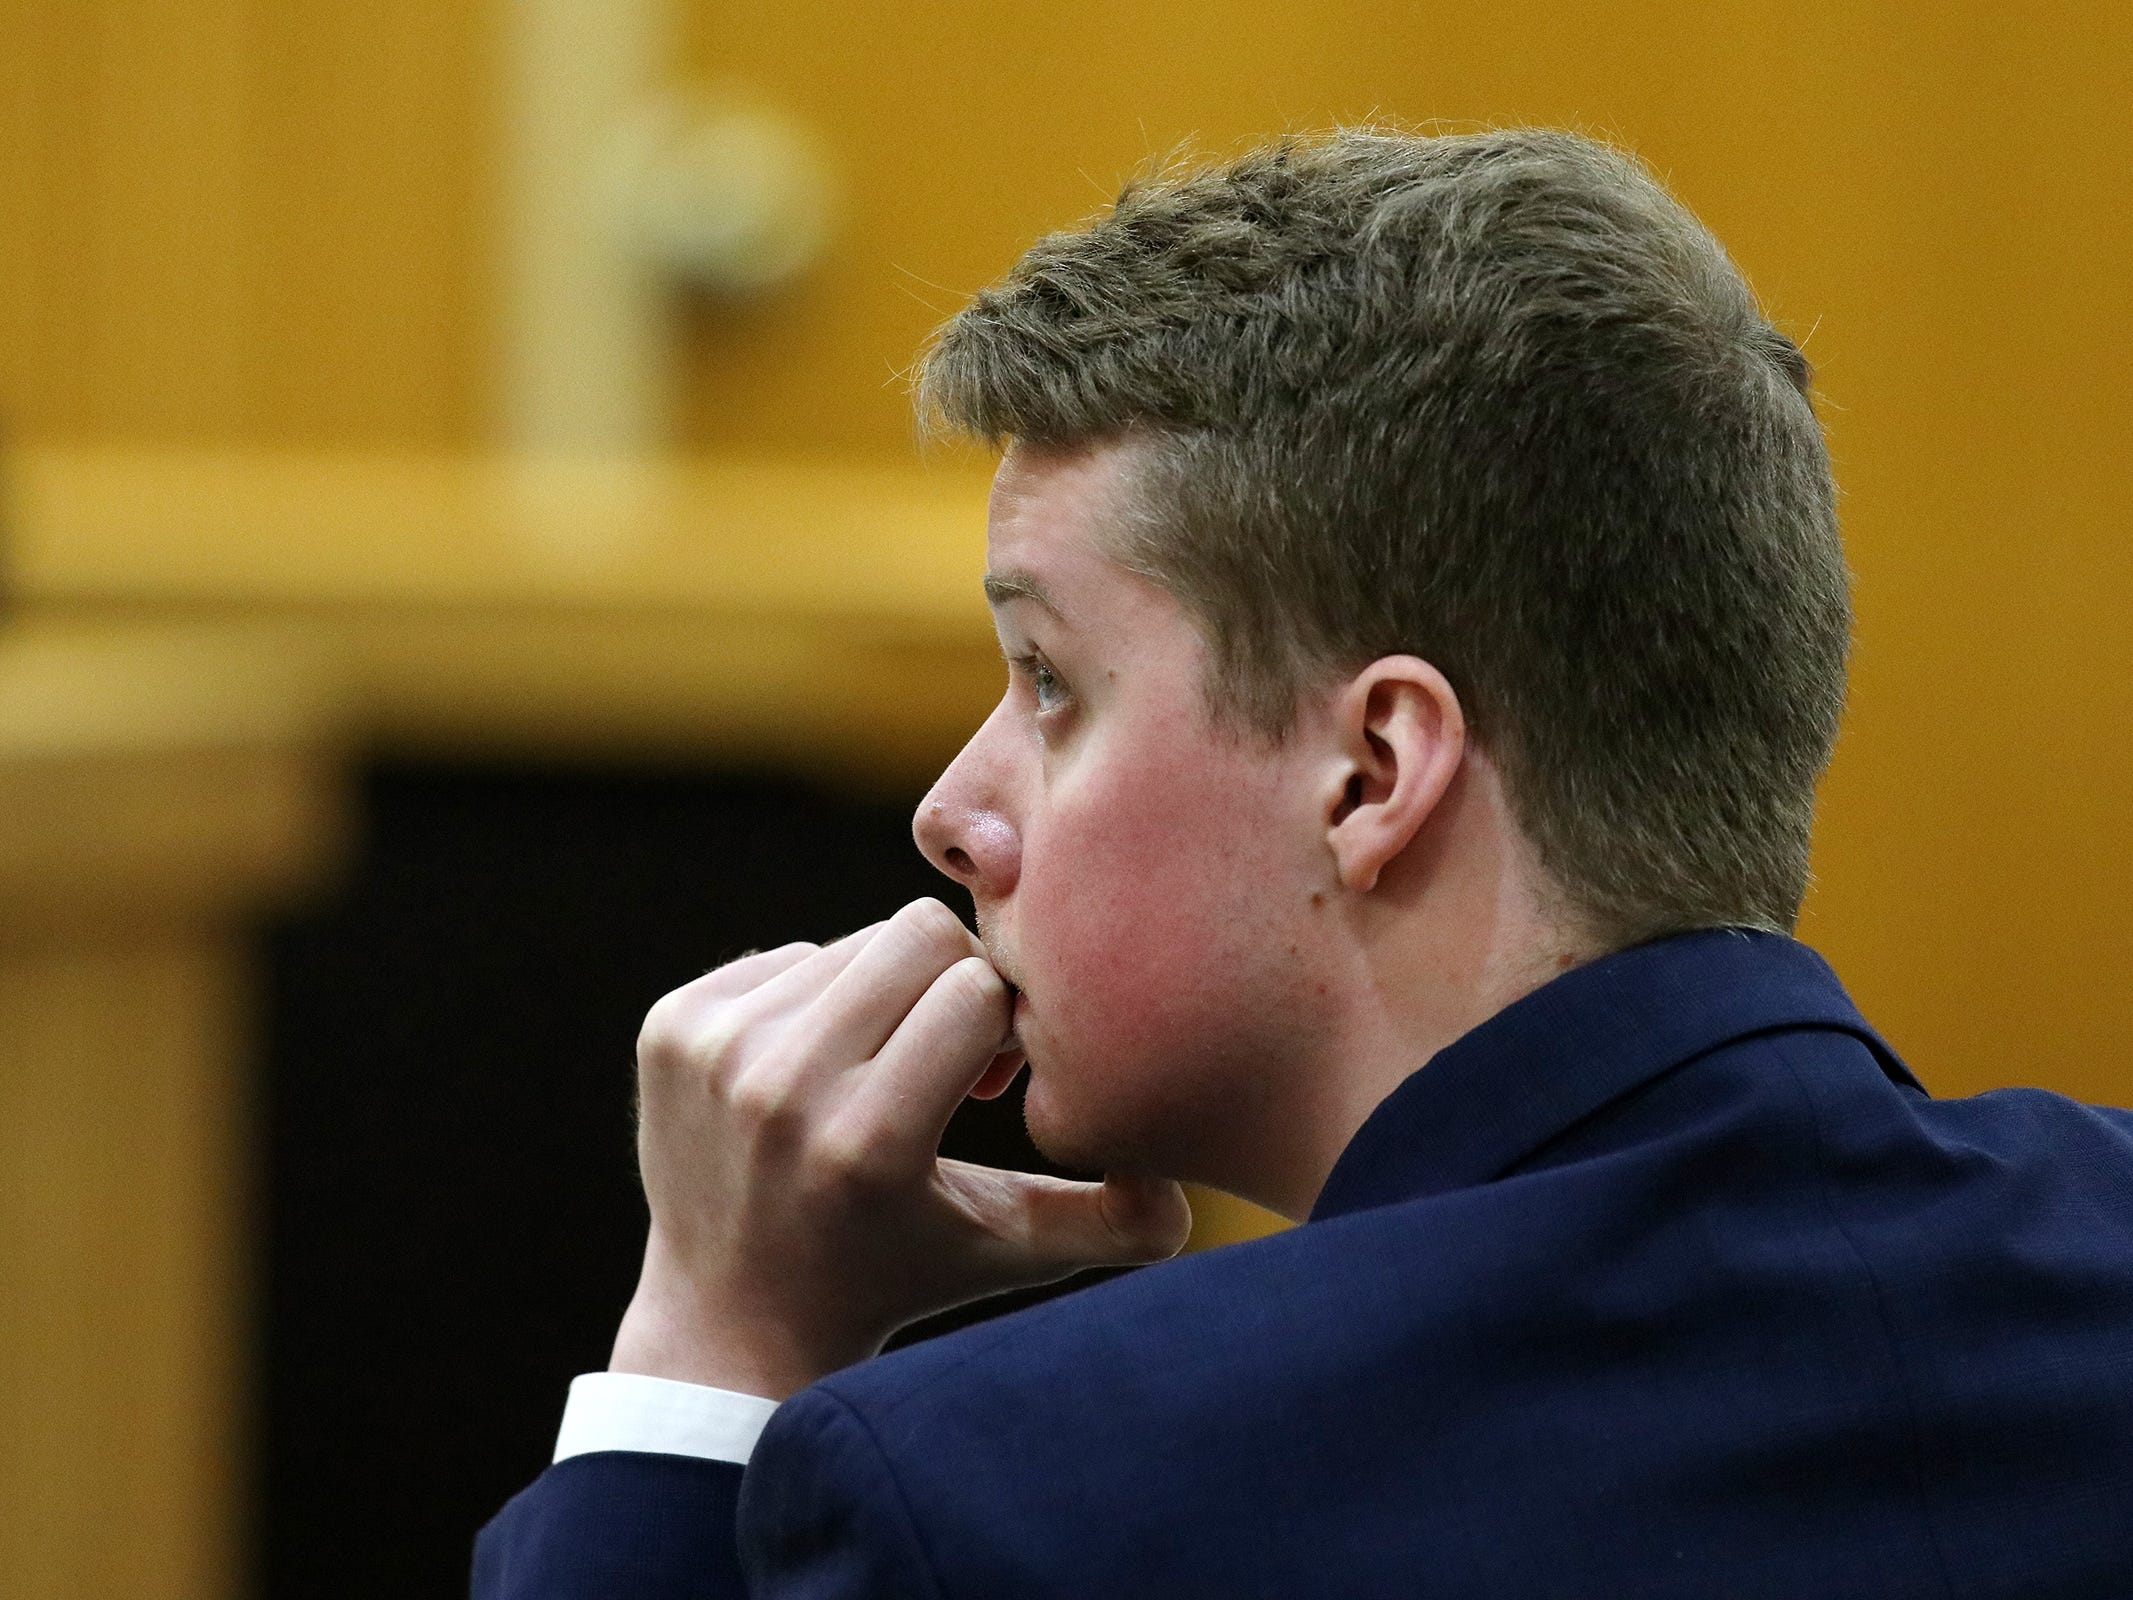 Liam McAtasney, who is charged with the murder of former high school classmate, Sarah Stern, listens to Carlos Diaz-Cobo, defense attorney, make his closing arguments during trial before Superior Court Judge Richard W. English at the Monmouth County Courthouse in Freehold, NJ Friday, February 22, 2019.